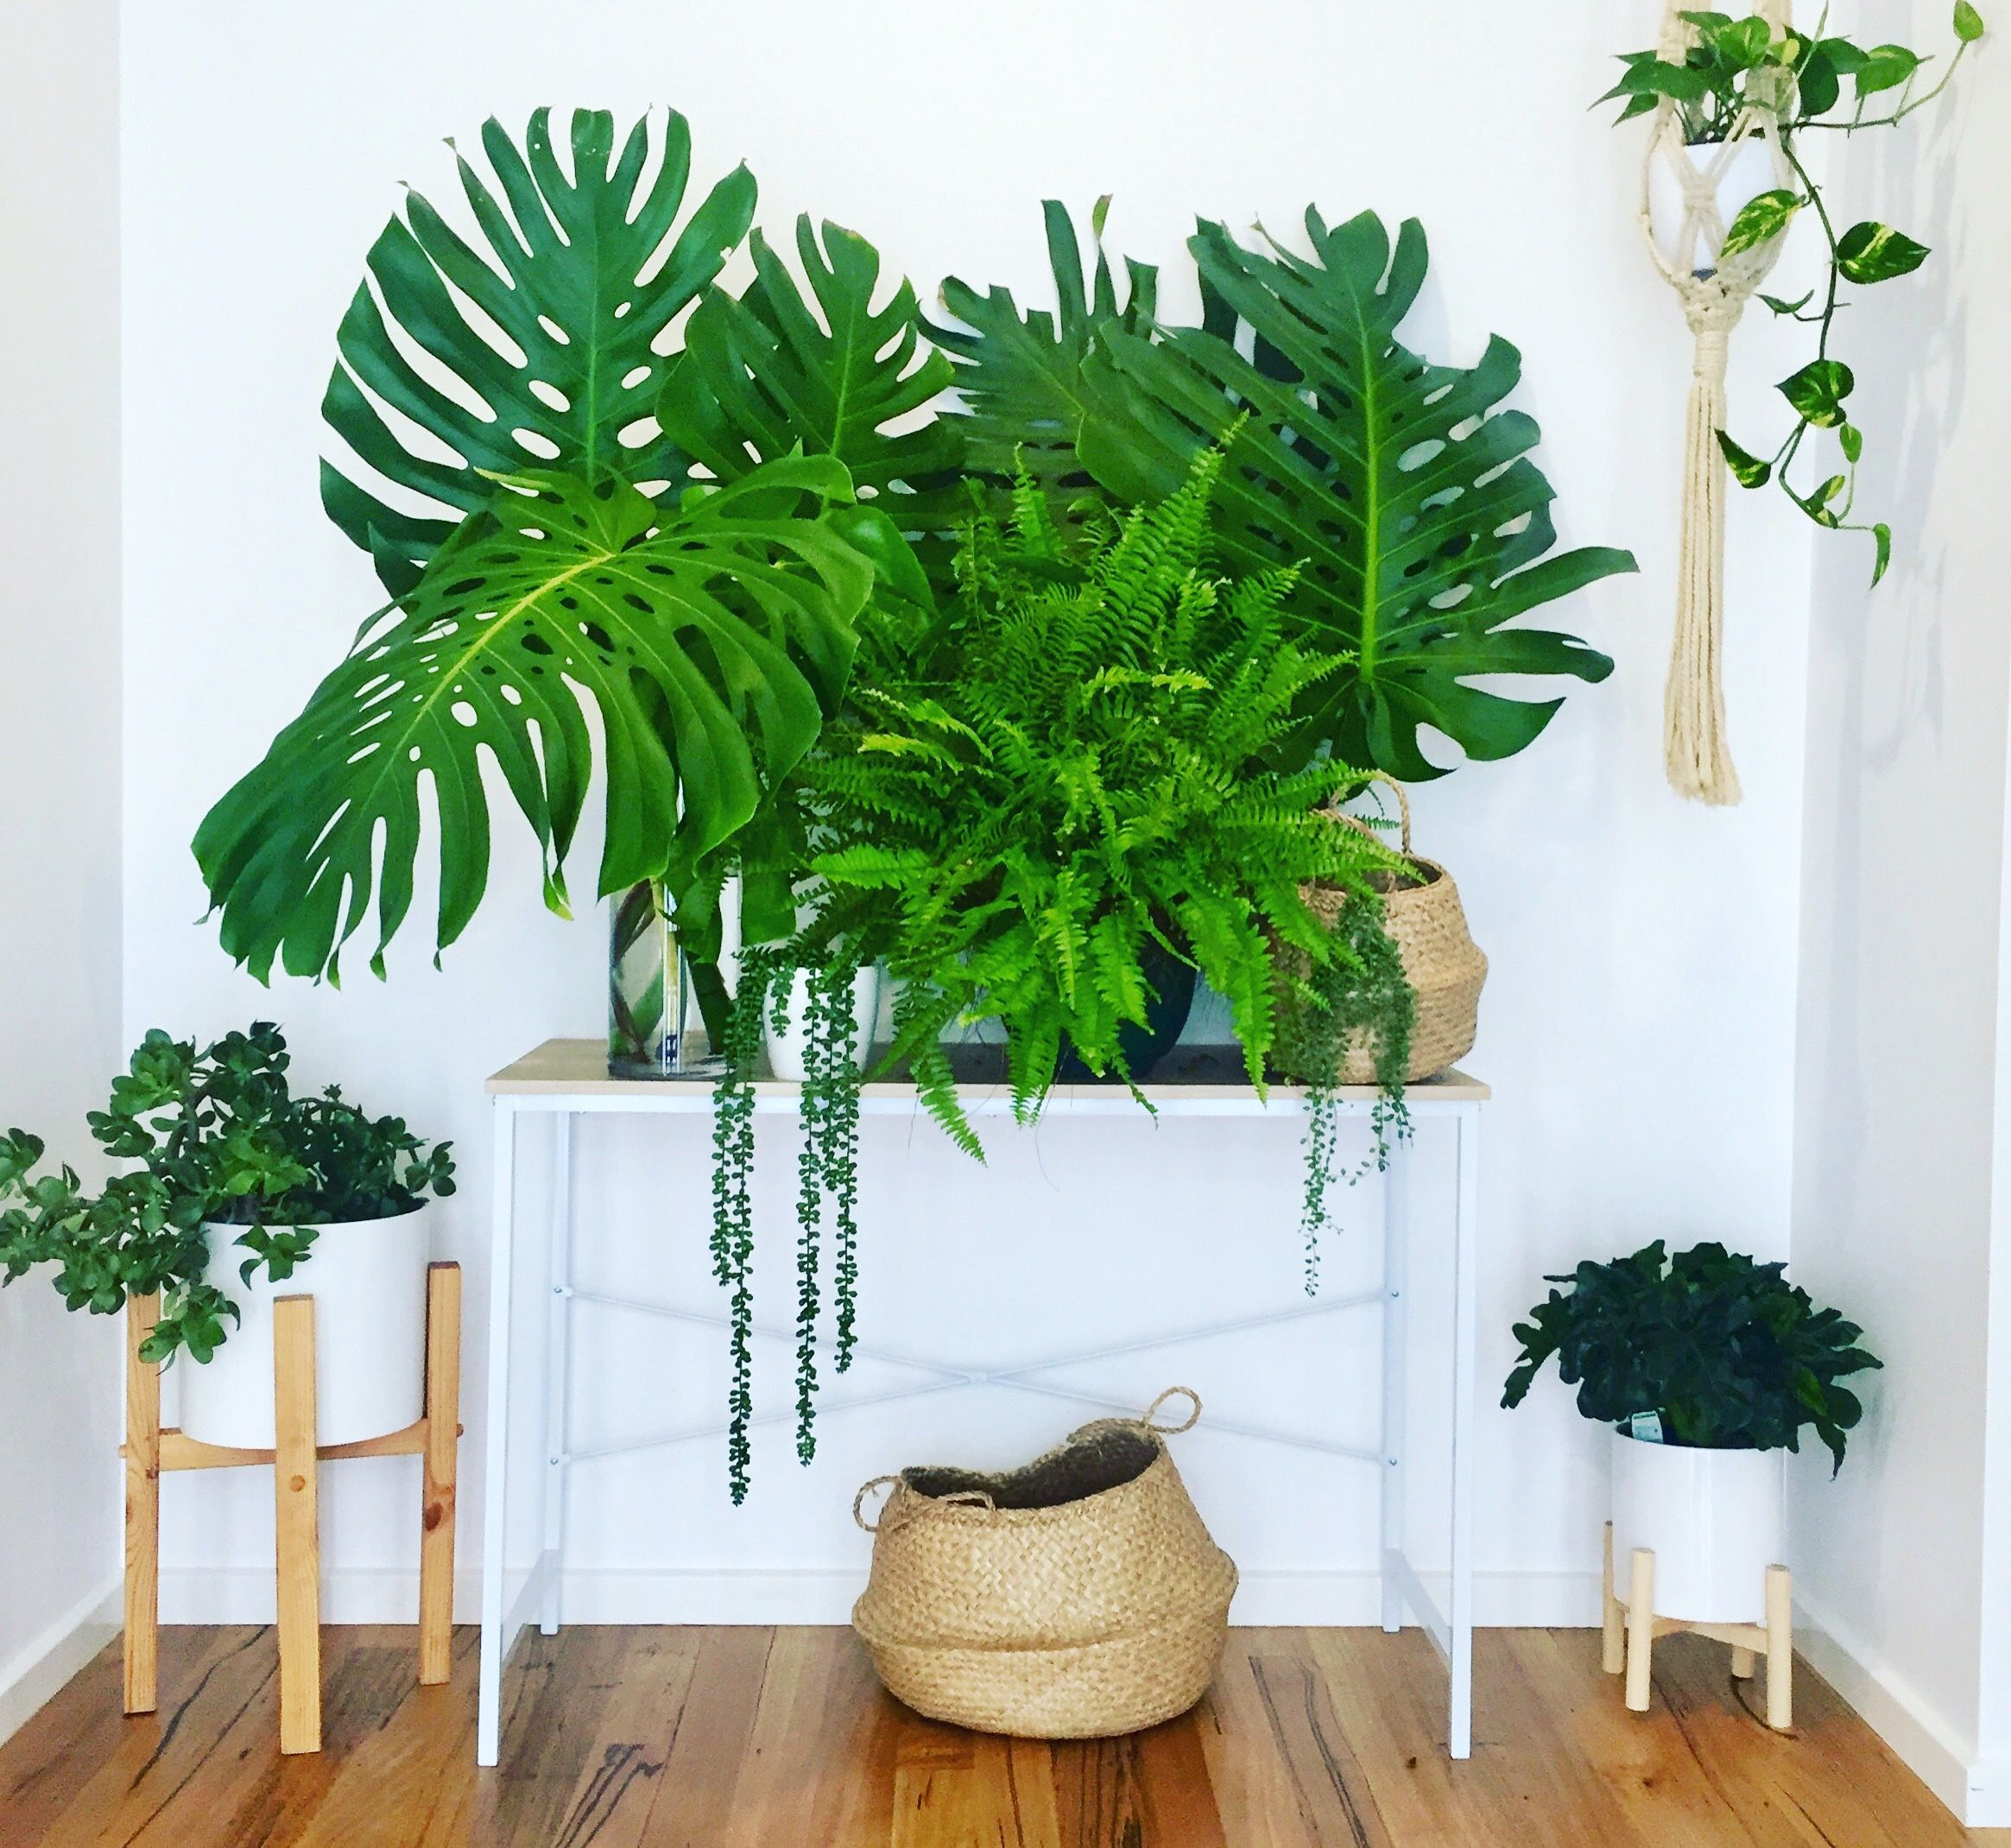 My Lush Indoor Garden In The Entrance Of Our House Plants Jungle Greenery Pot Plants Urban Jungle Monstera Plants Indoor Plants Indoor Garden